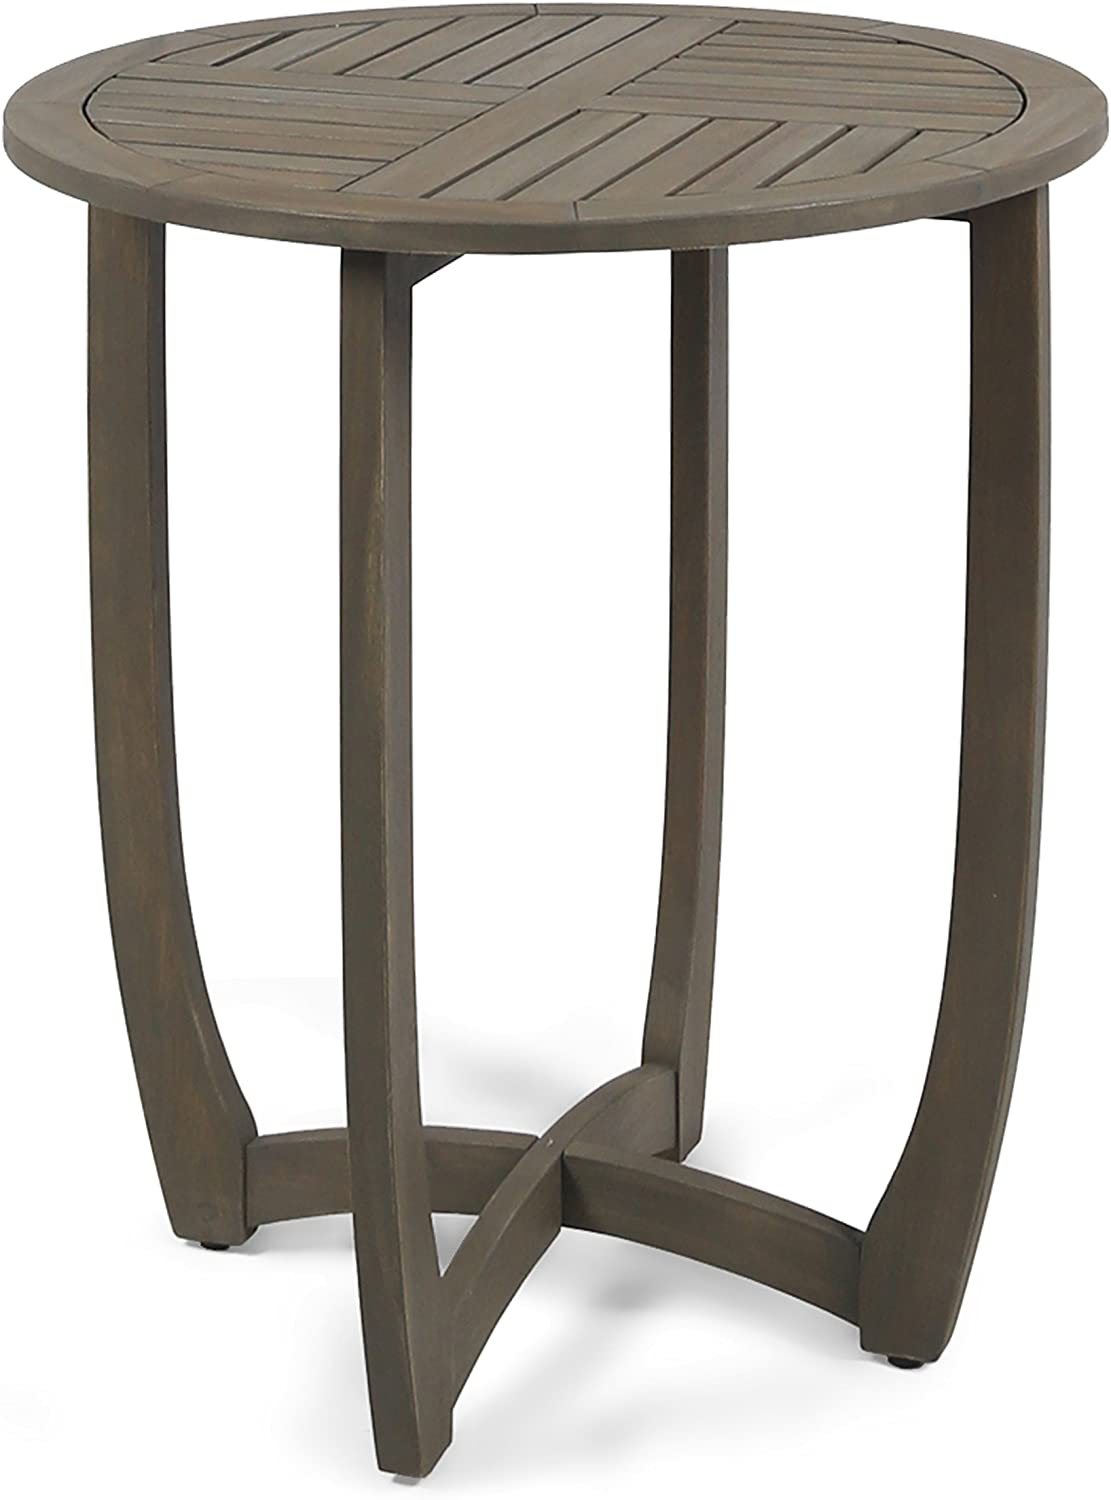 Christopher Knight Home 305135 Andria Outdoor Acacia Wood Bistro Table, Gray Finish